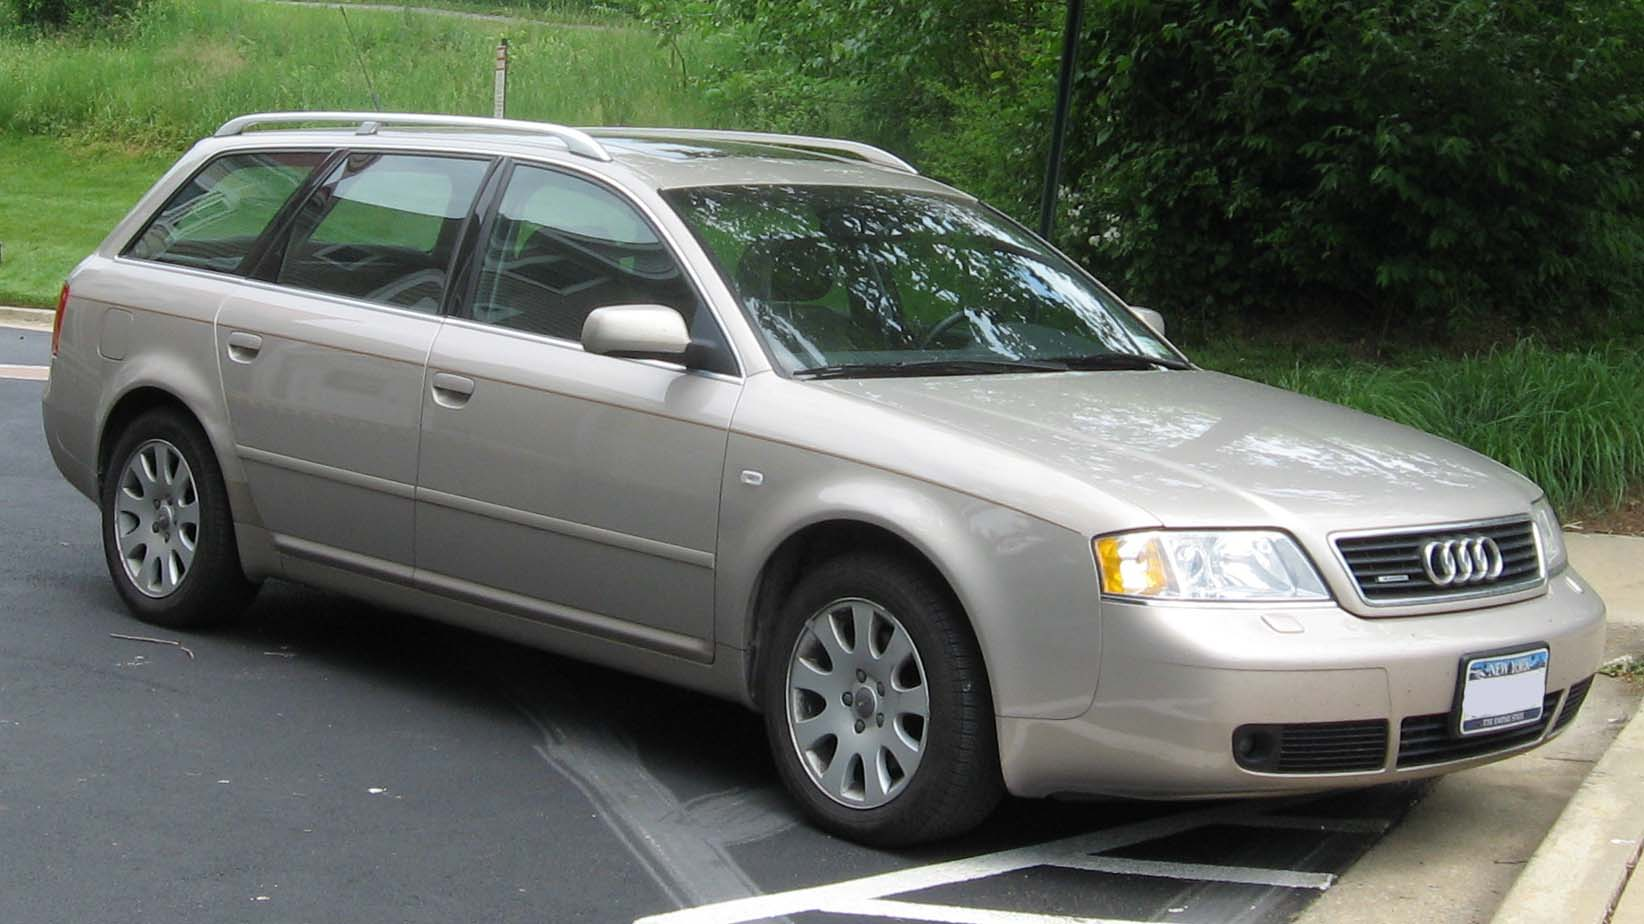 File:C5-Audi-A6-wagon.jpg - Wikimedia Commons